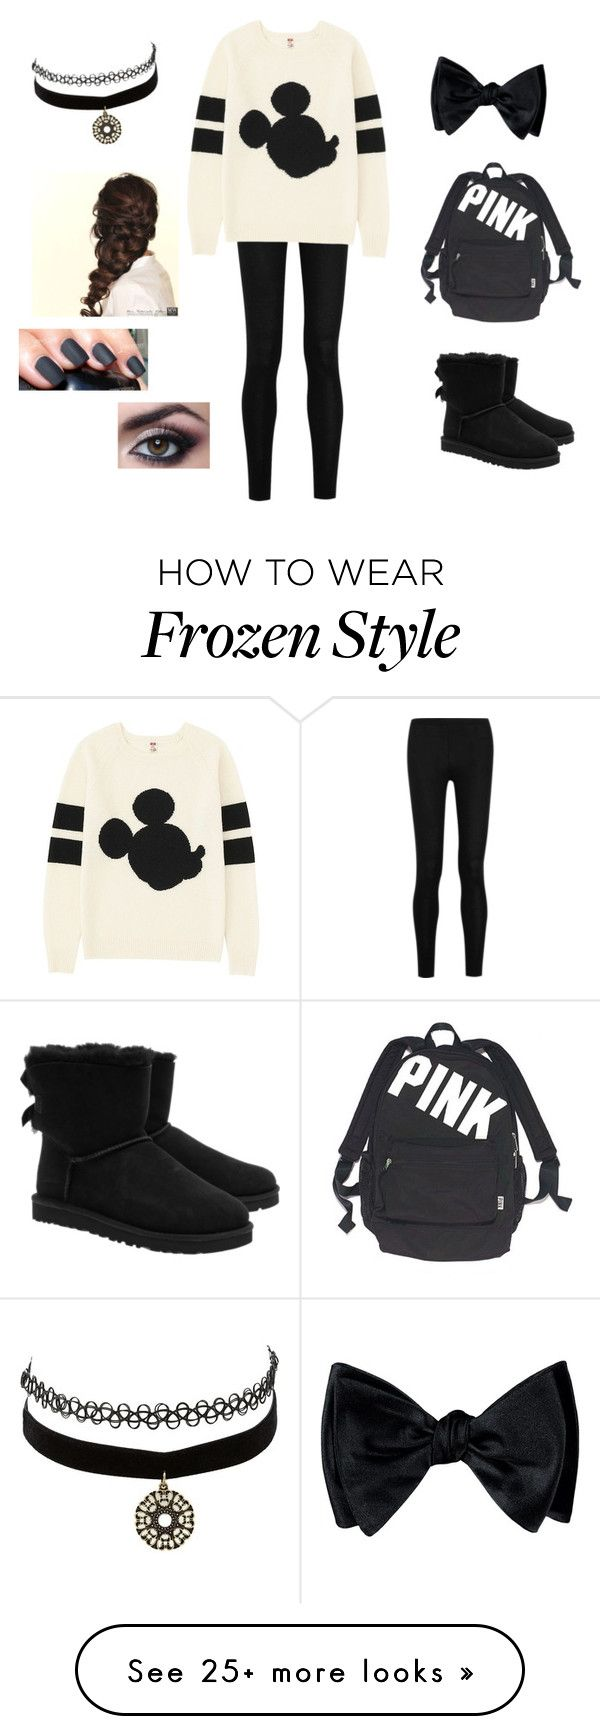 Cute for school by taylor8069 on Polyvore featuring Donna Karan, Uniqlo, UGG Australia, Victorias Secret, Charlotte Russe and Disney